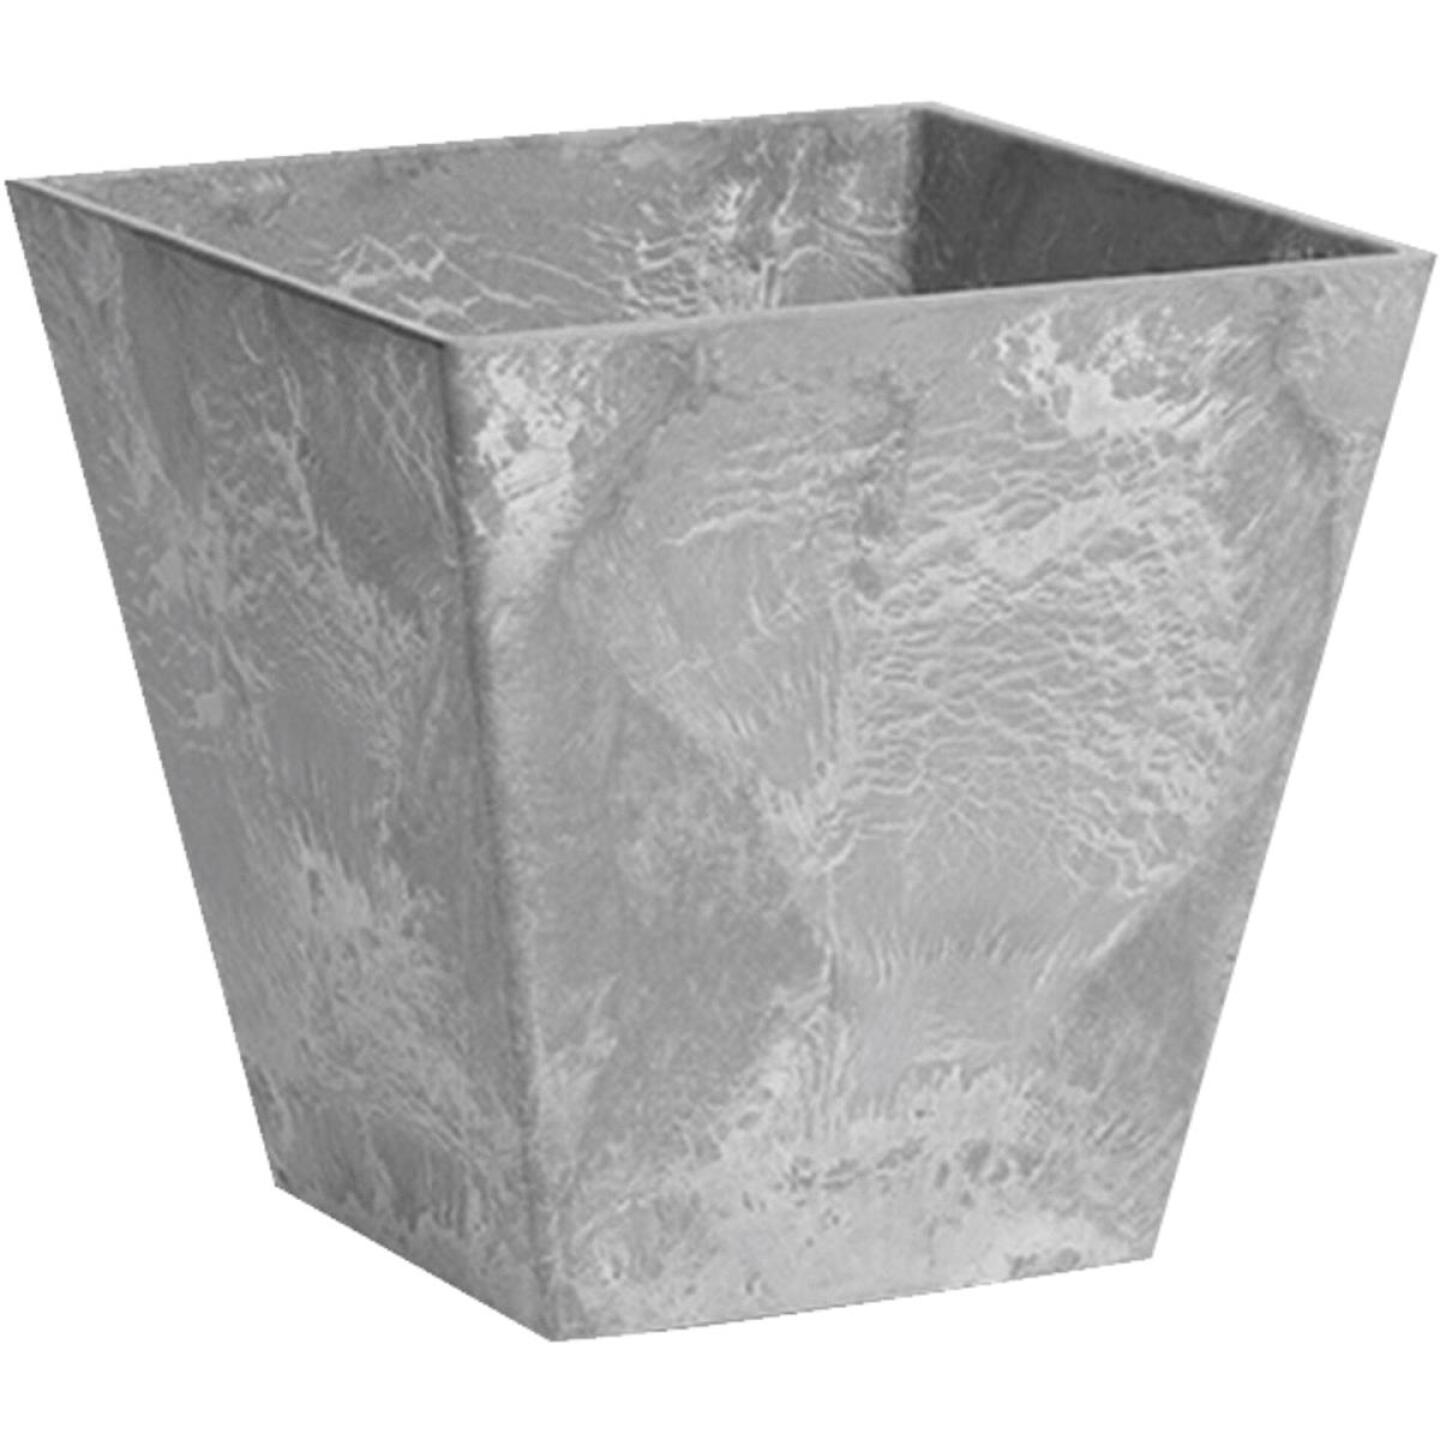 Novelty ArtStone Ella 10 In. W. x 9.75 In. H. x 10 In. L. Gray Resin Planter Image 1